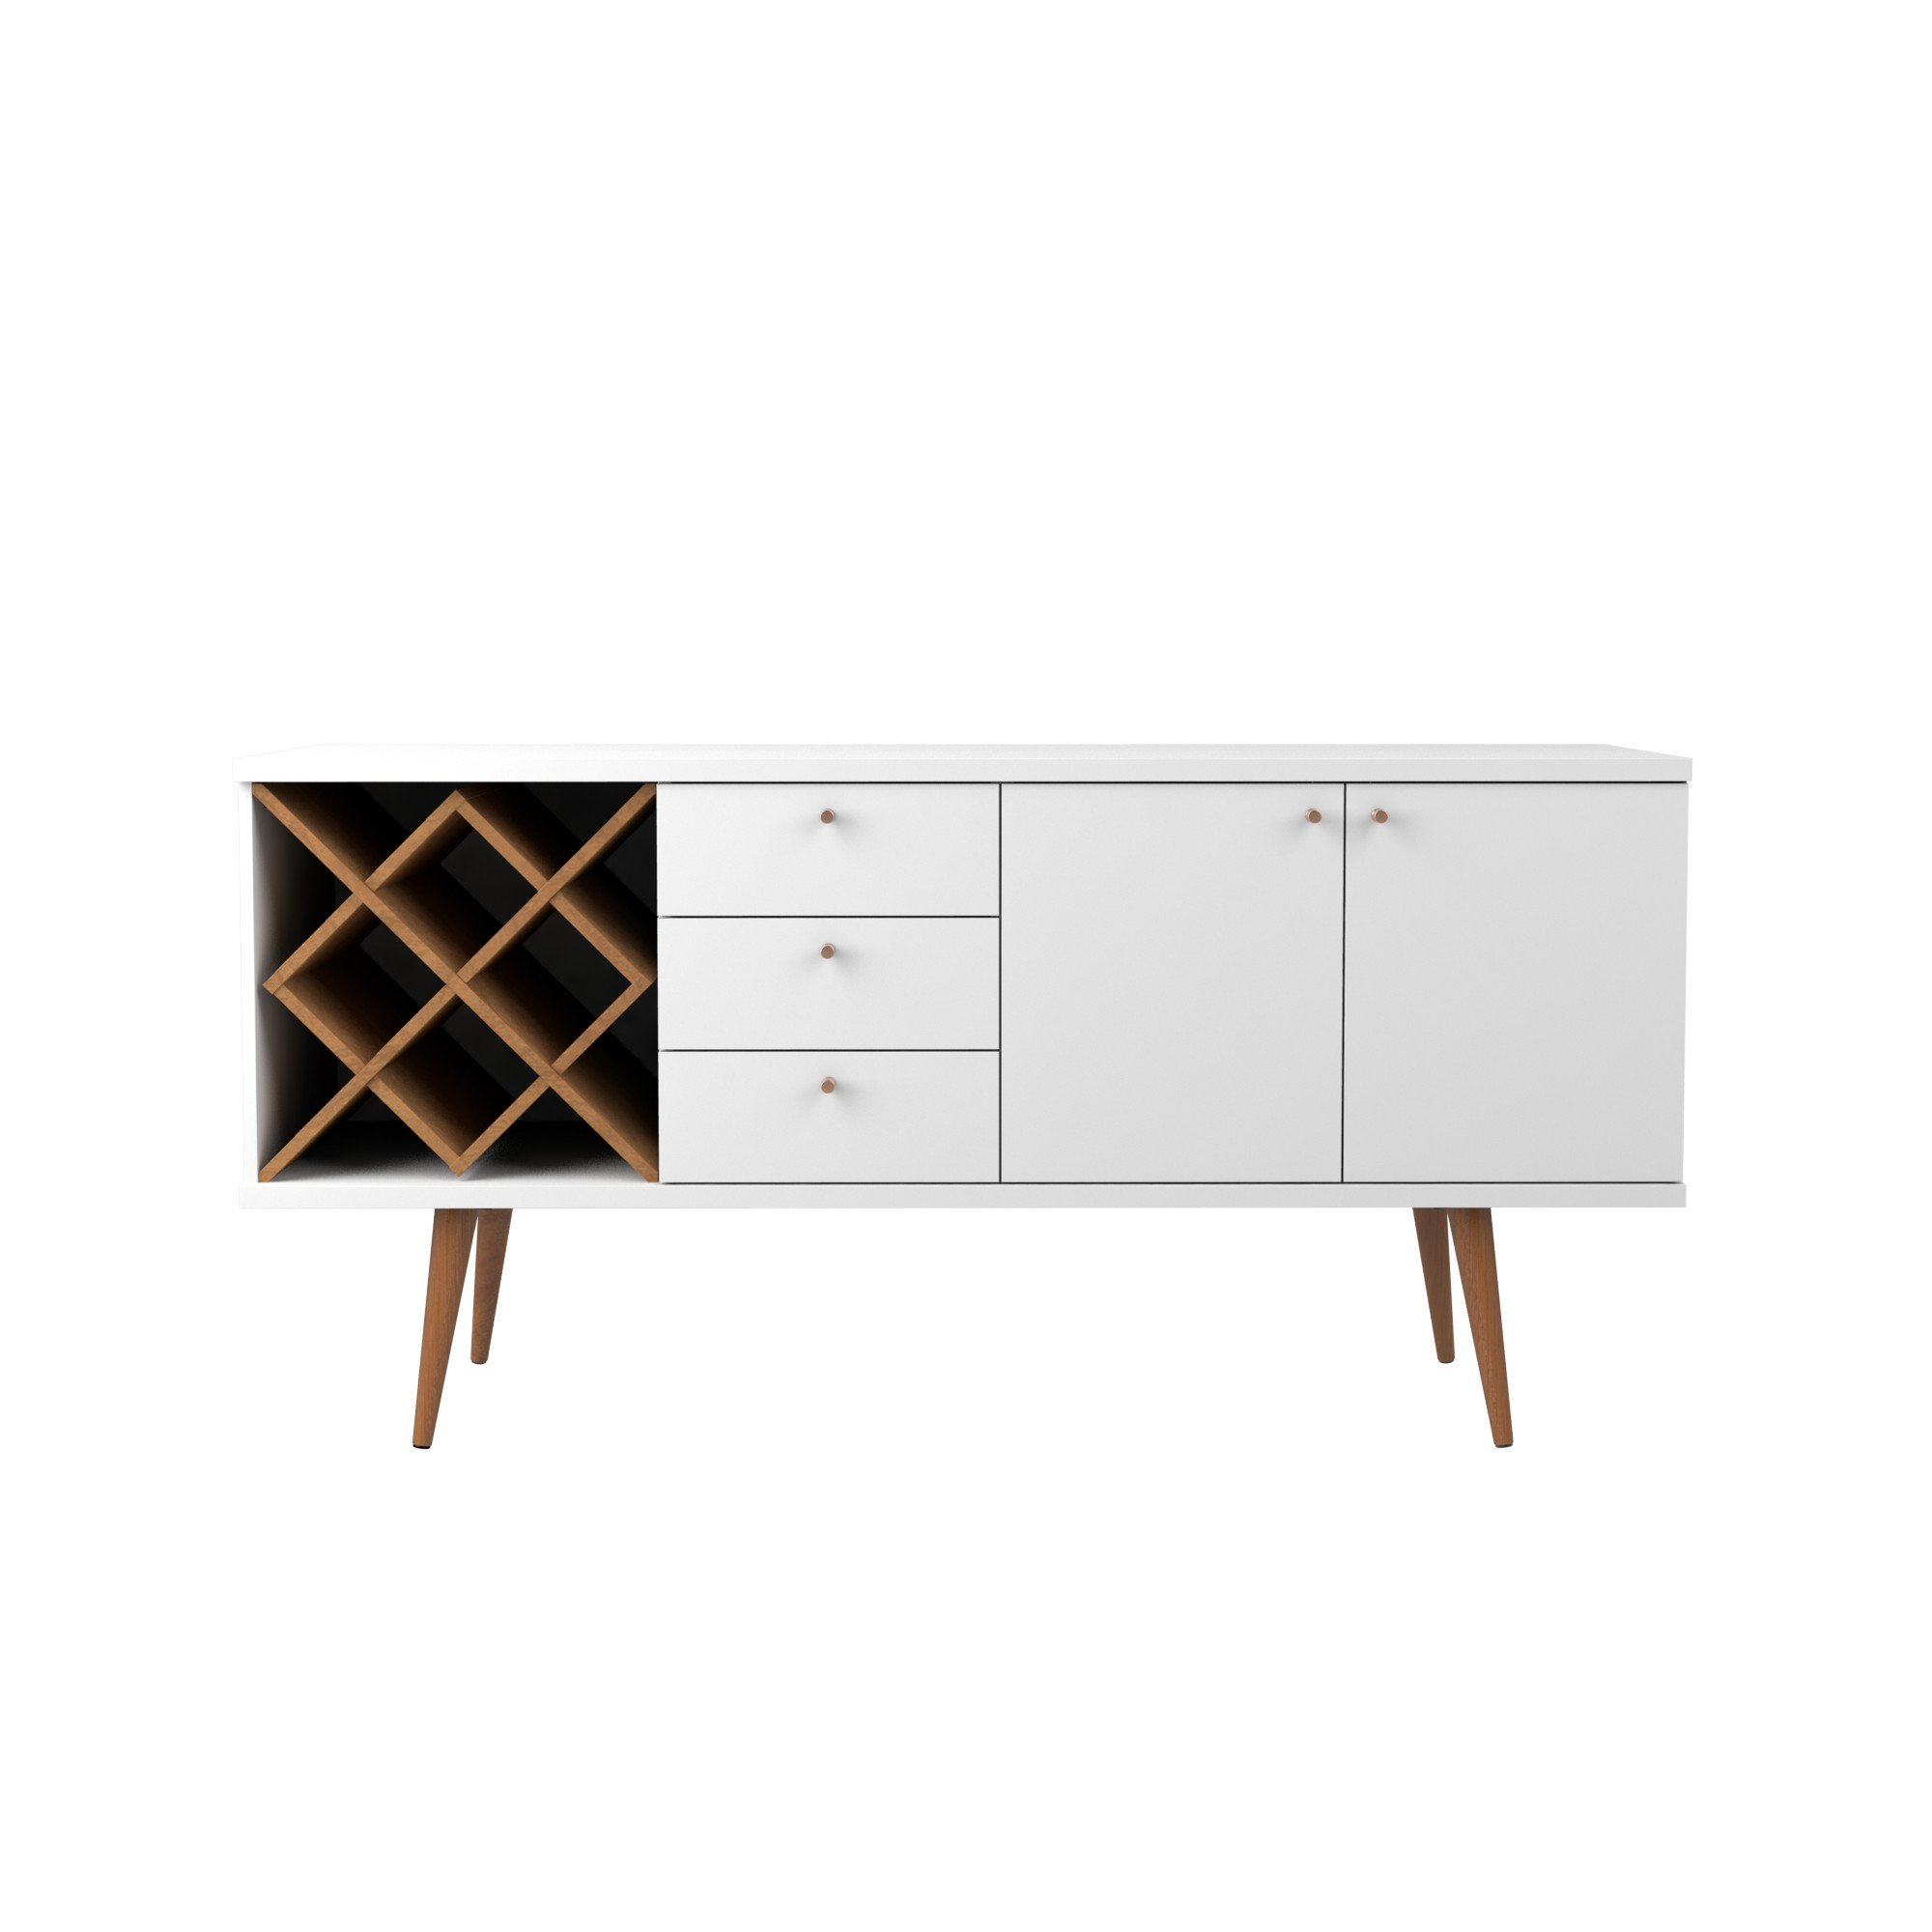 Manhattan Comfort Utopia Collection Mid Century Modern Sideboard Buffet Stand With 4 Bottle Wine Rack, Cabinet and 3 Drawers, Splayed Legs, White by Manhattan Comfort (Image #1)